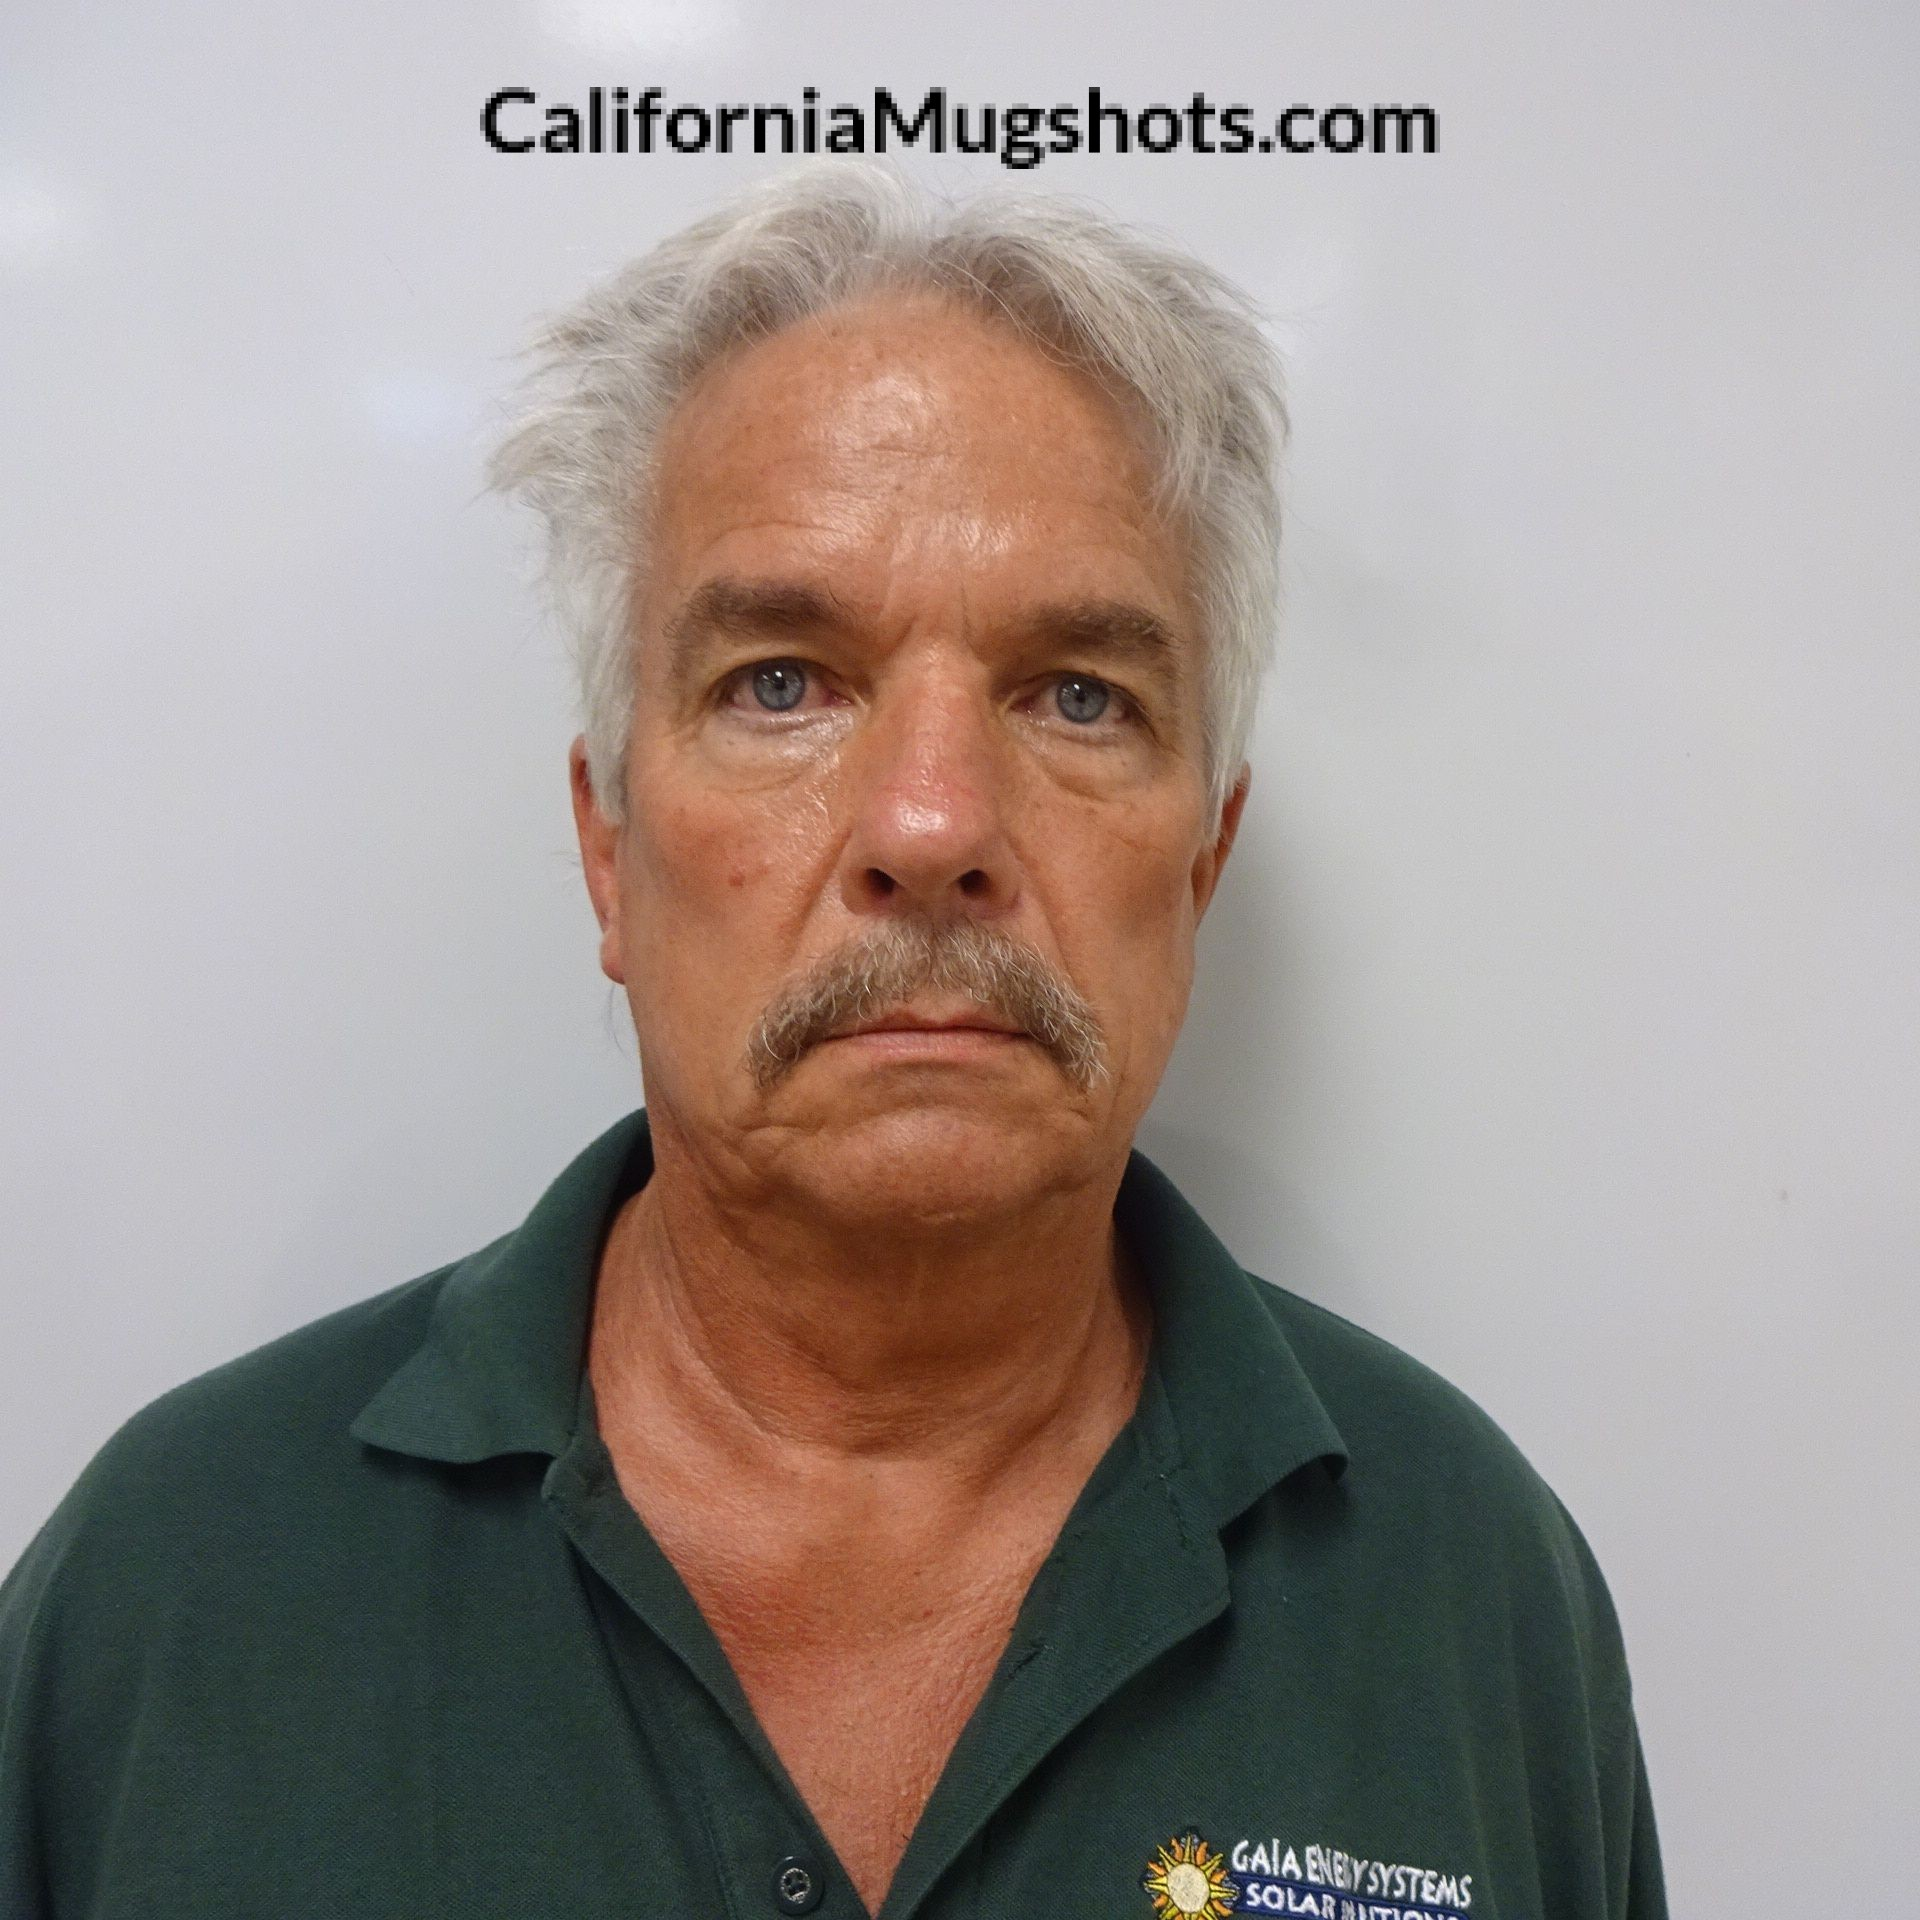 Richard Allen Berry arrested in Lake County,CA